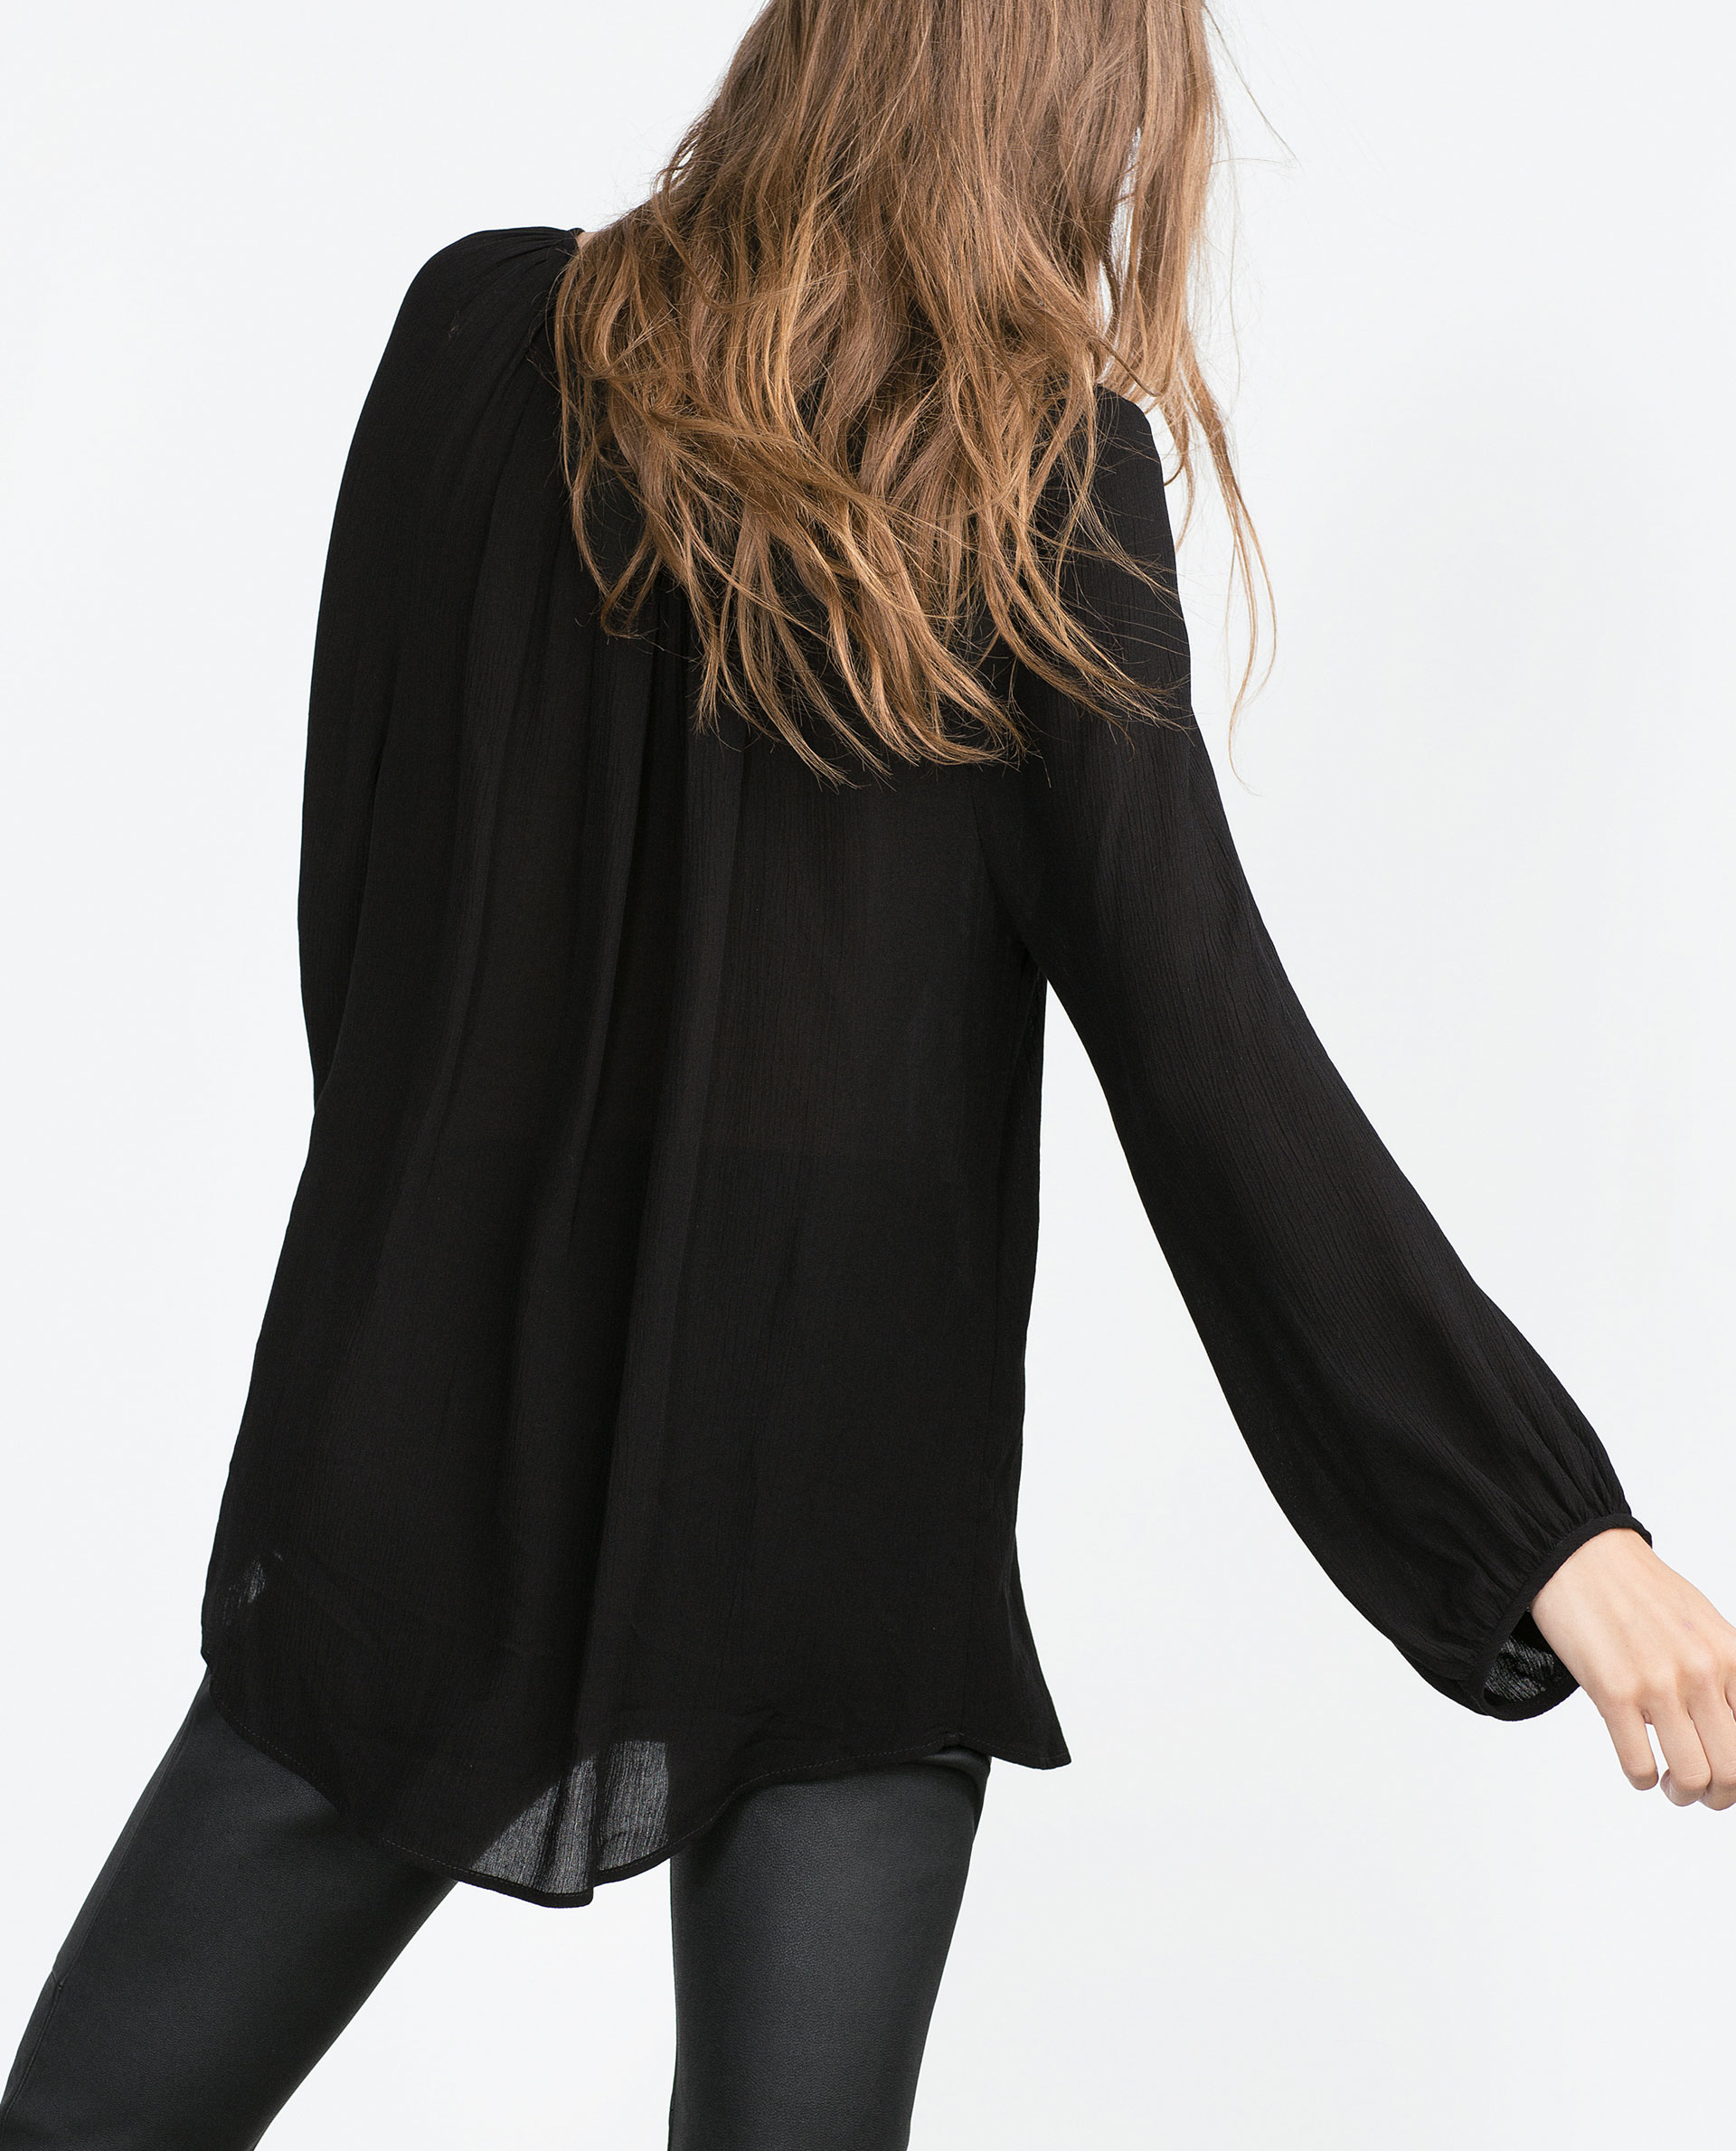 Zara Black Lace Blouse 10